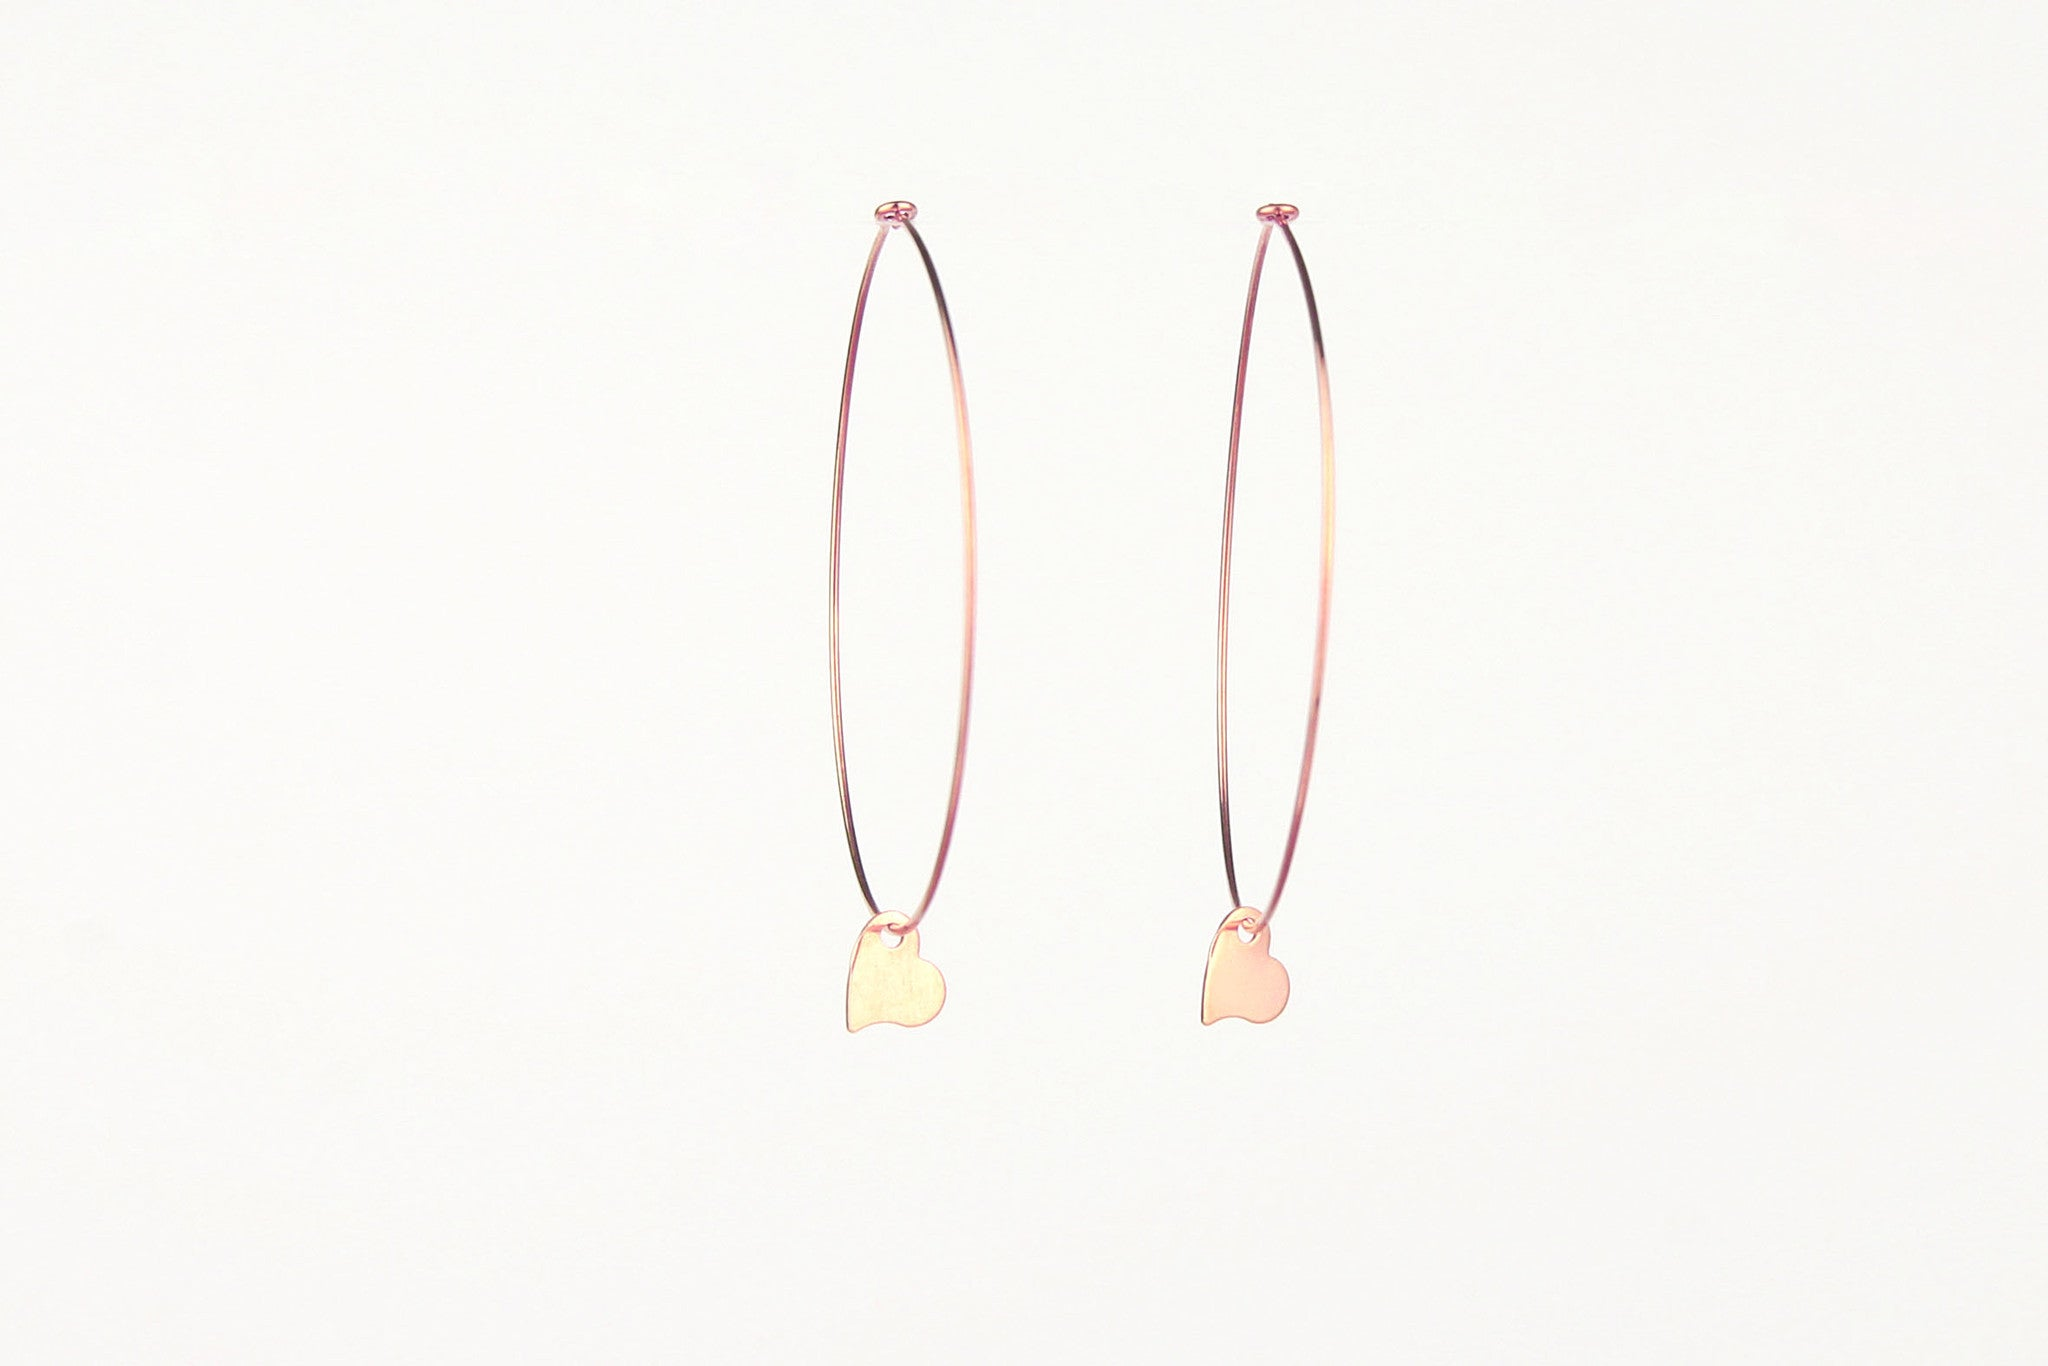 jewelberry ohrringe earrings my love hoops rose gold plated sterling silver fine jewelry handmade with love fairtrade